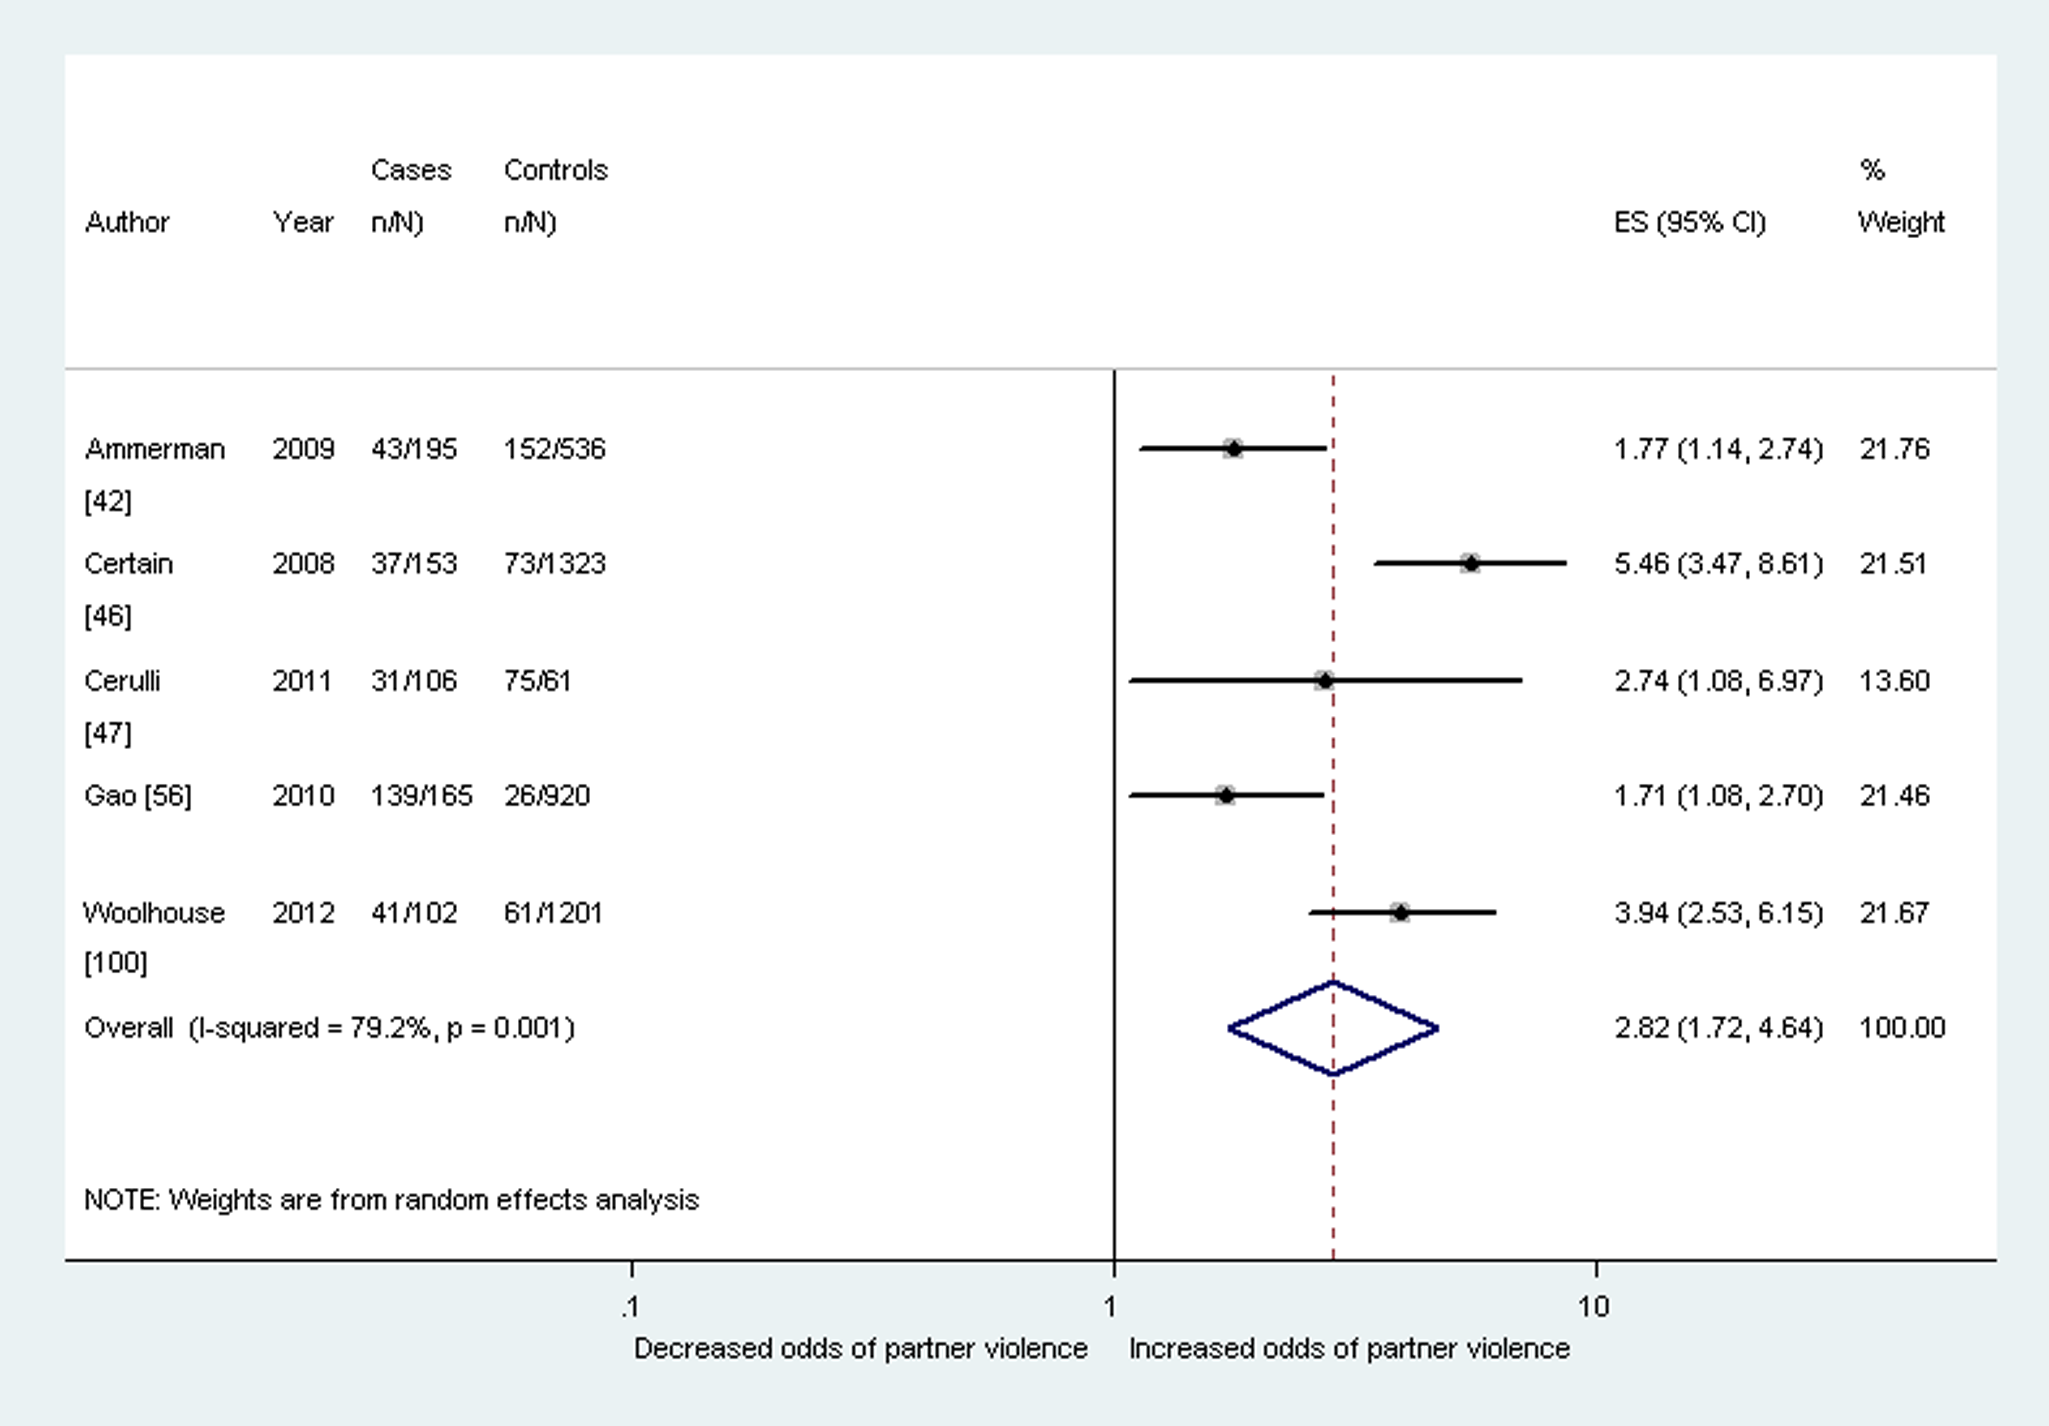 Meta-analysis of the association between postnatal depression and any past year partner violence (cross-sectional studies).